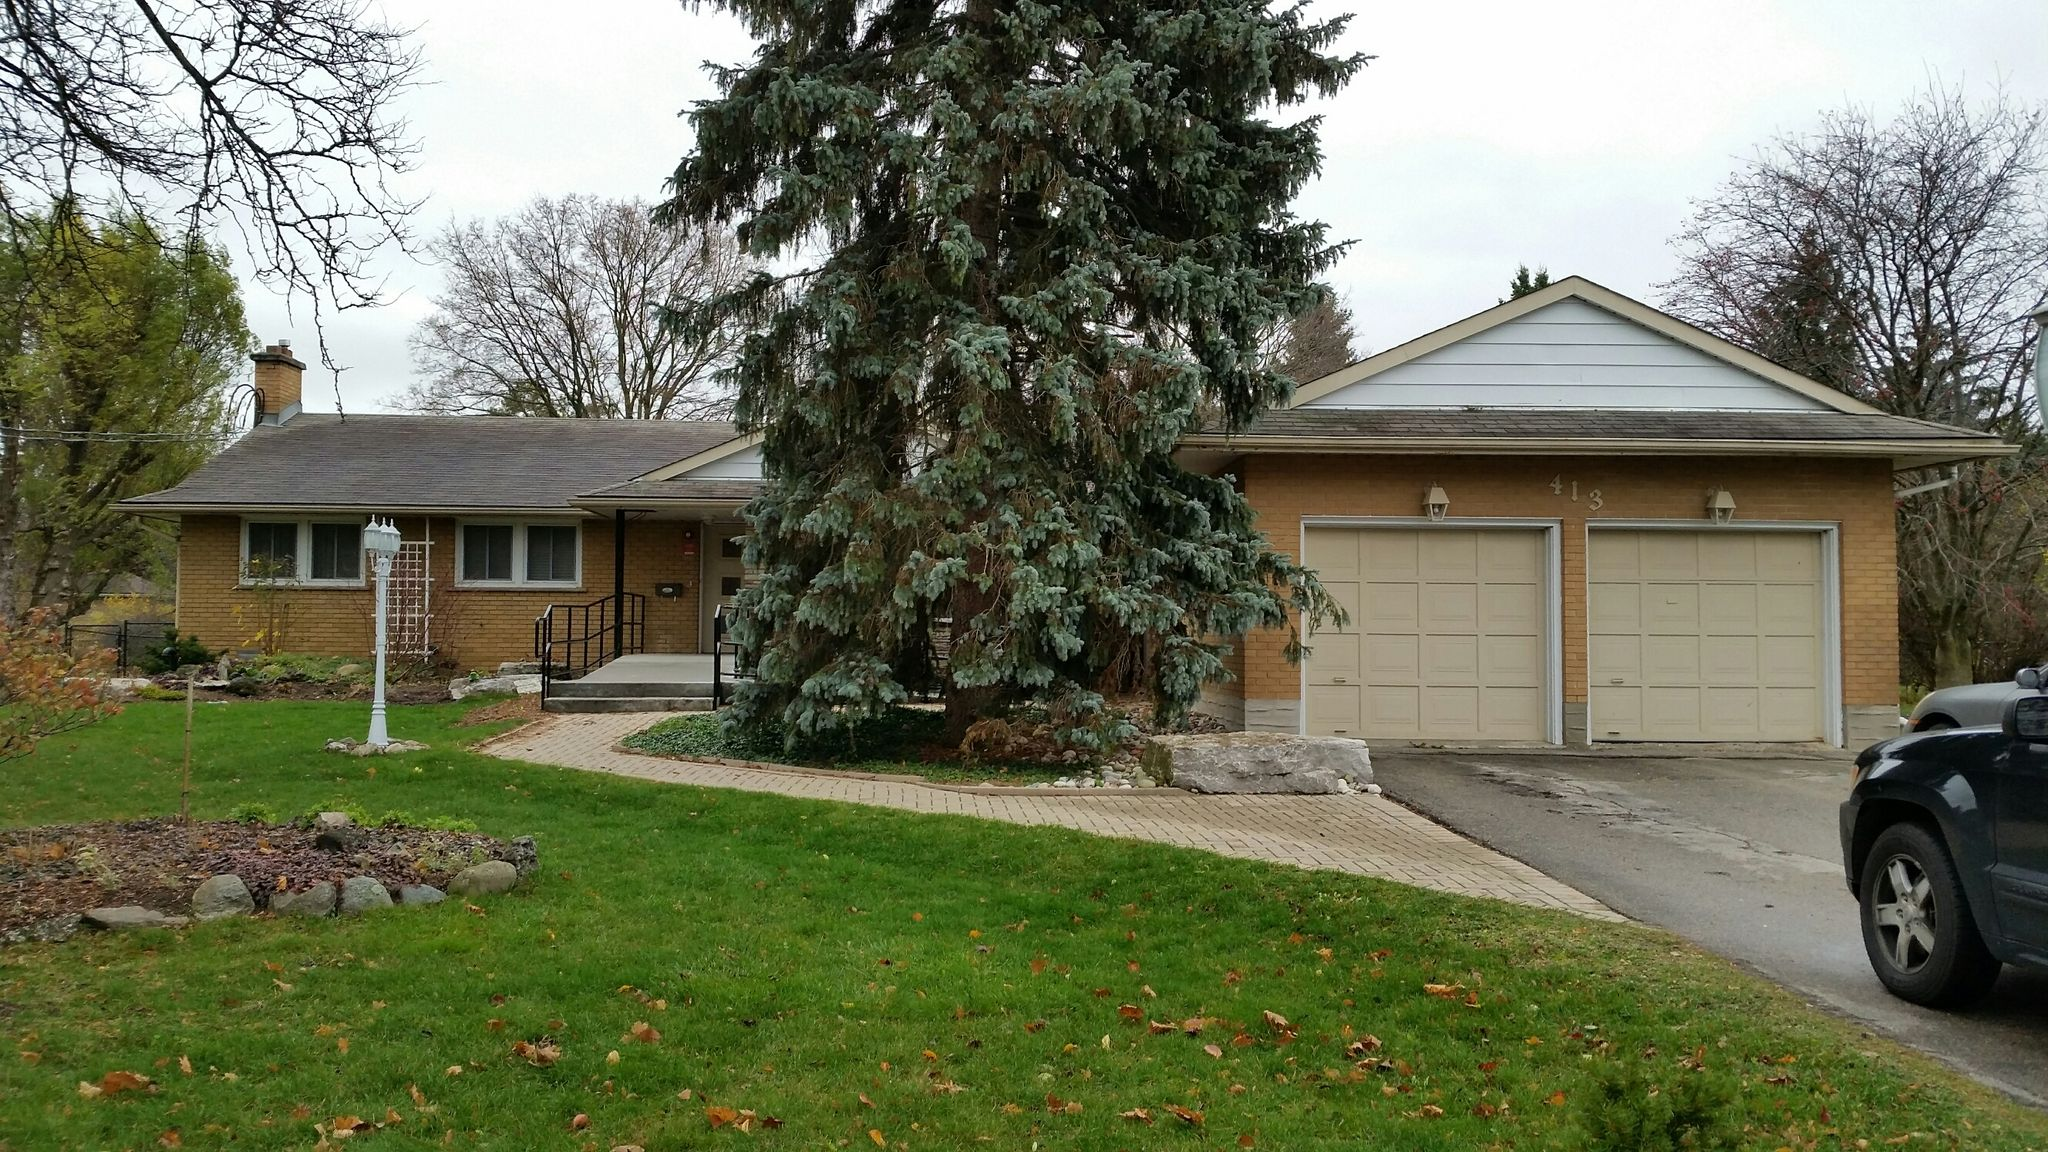 Forestlawn Home - Waterloo - 5 adults served with 24 hour support